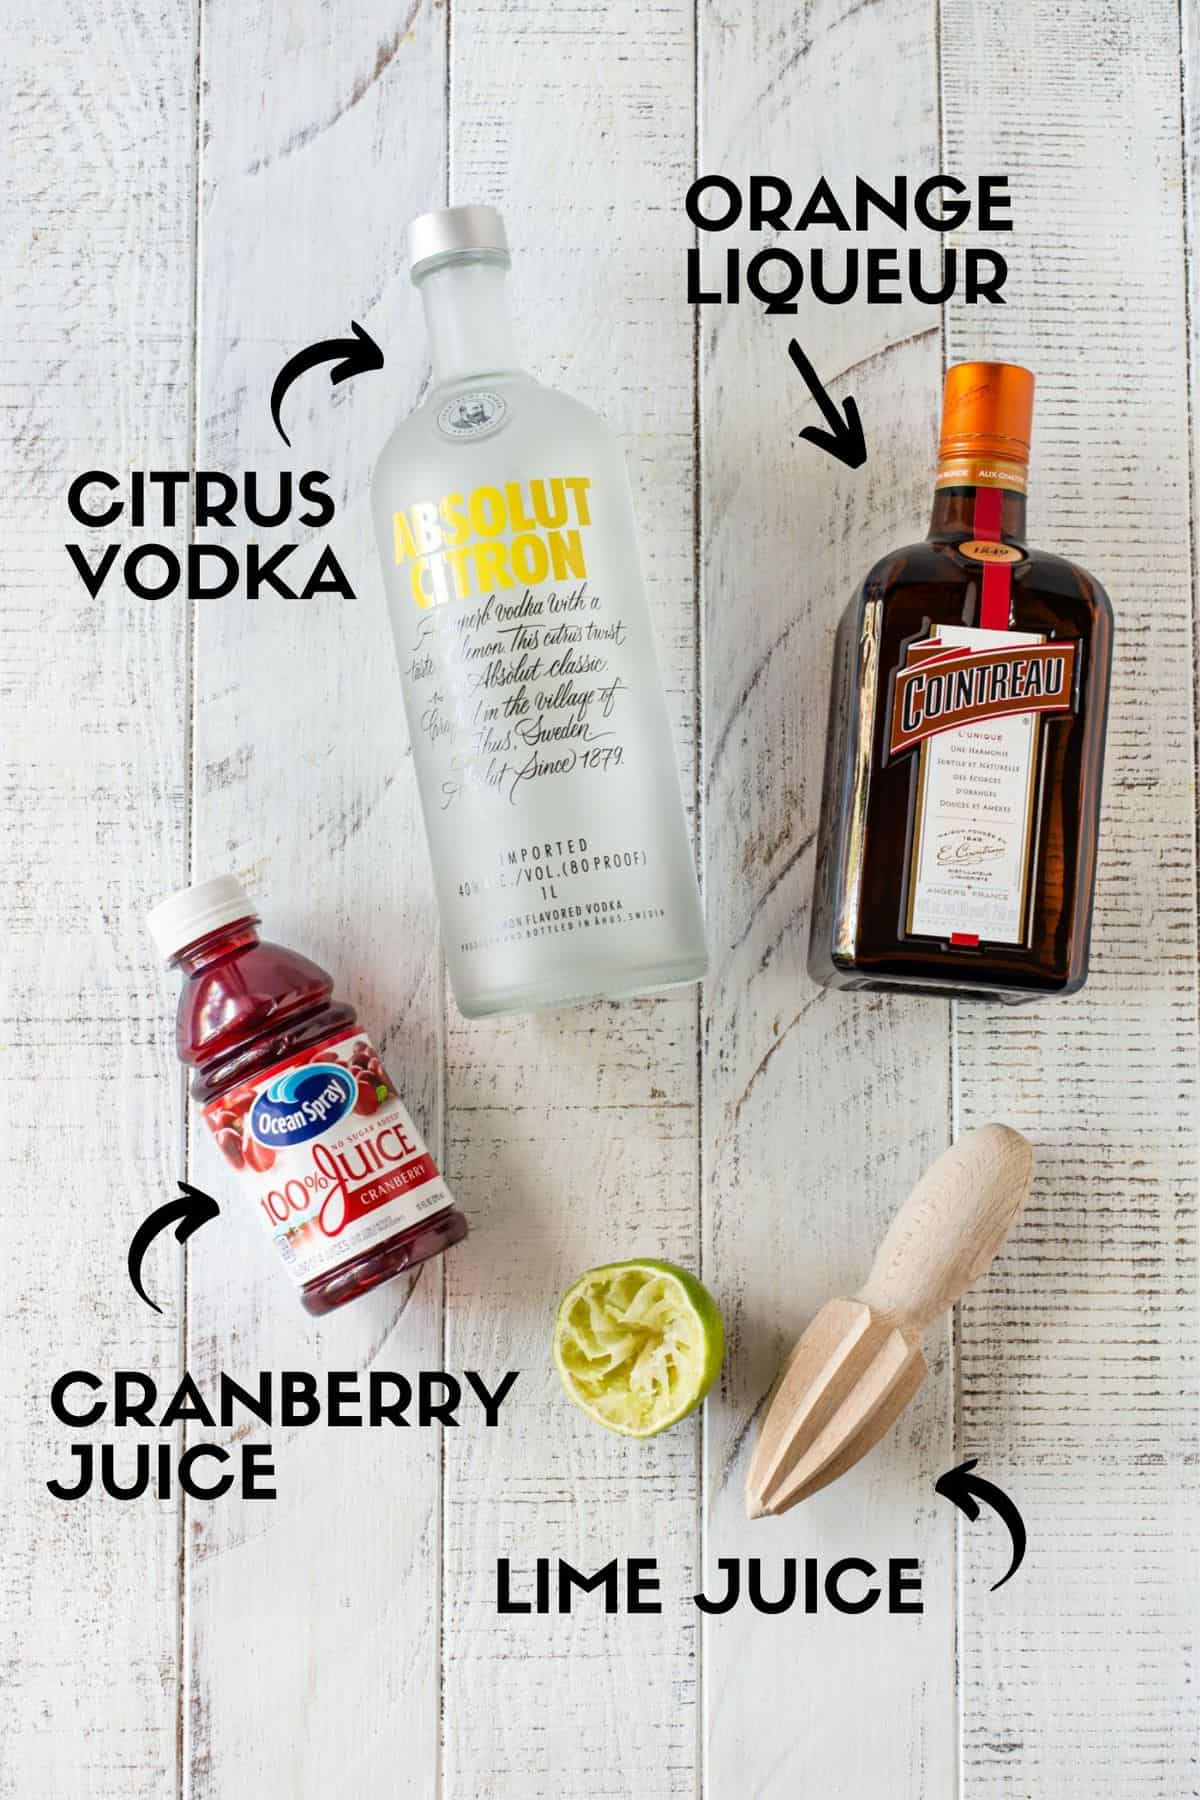 Text with ingredients for Cosmopolitan.